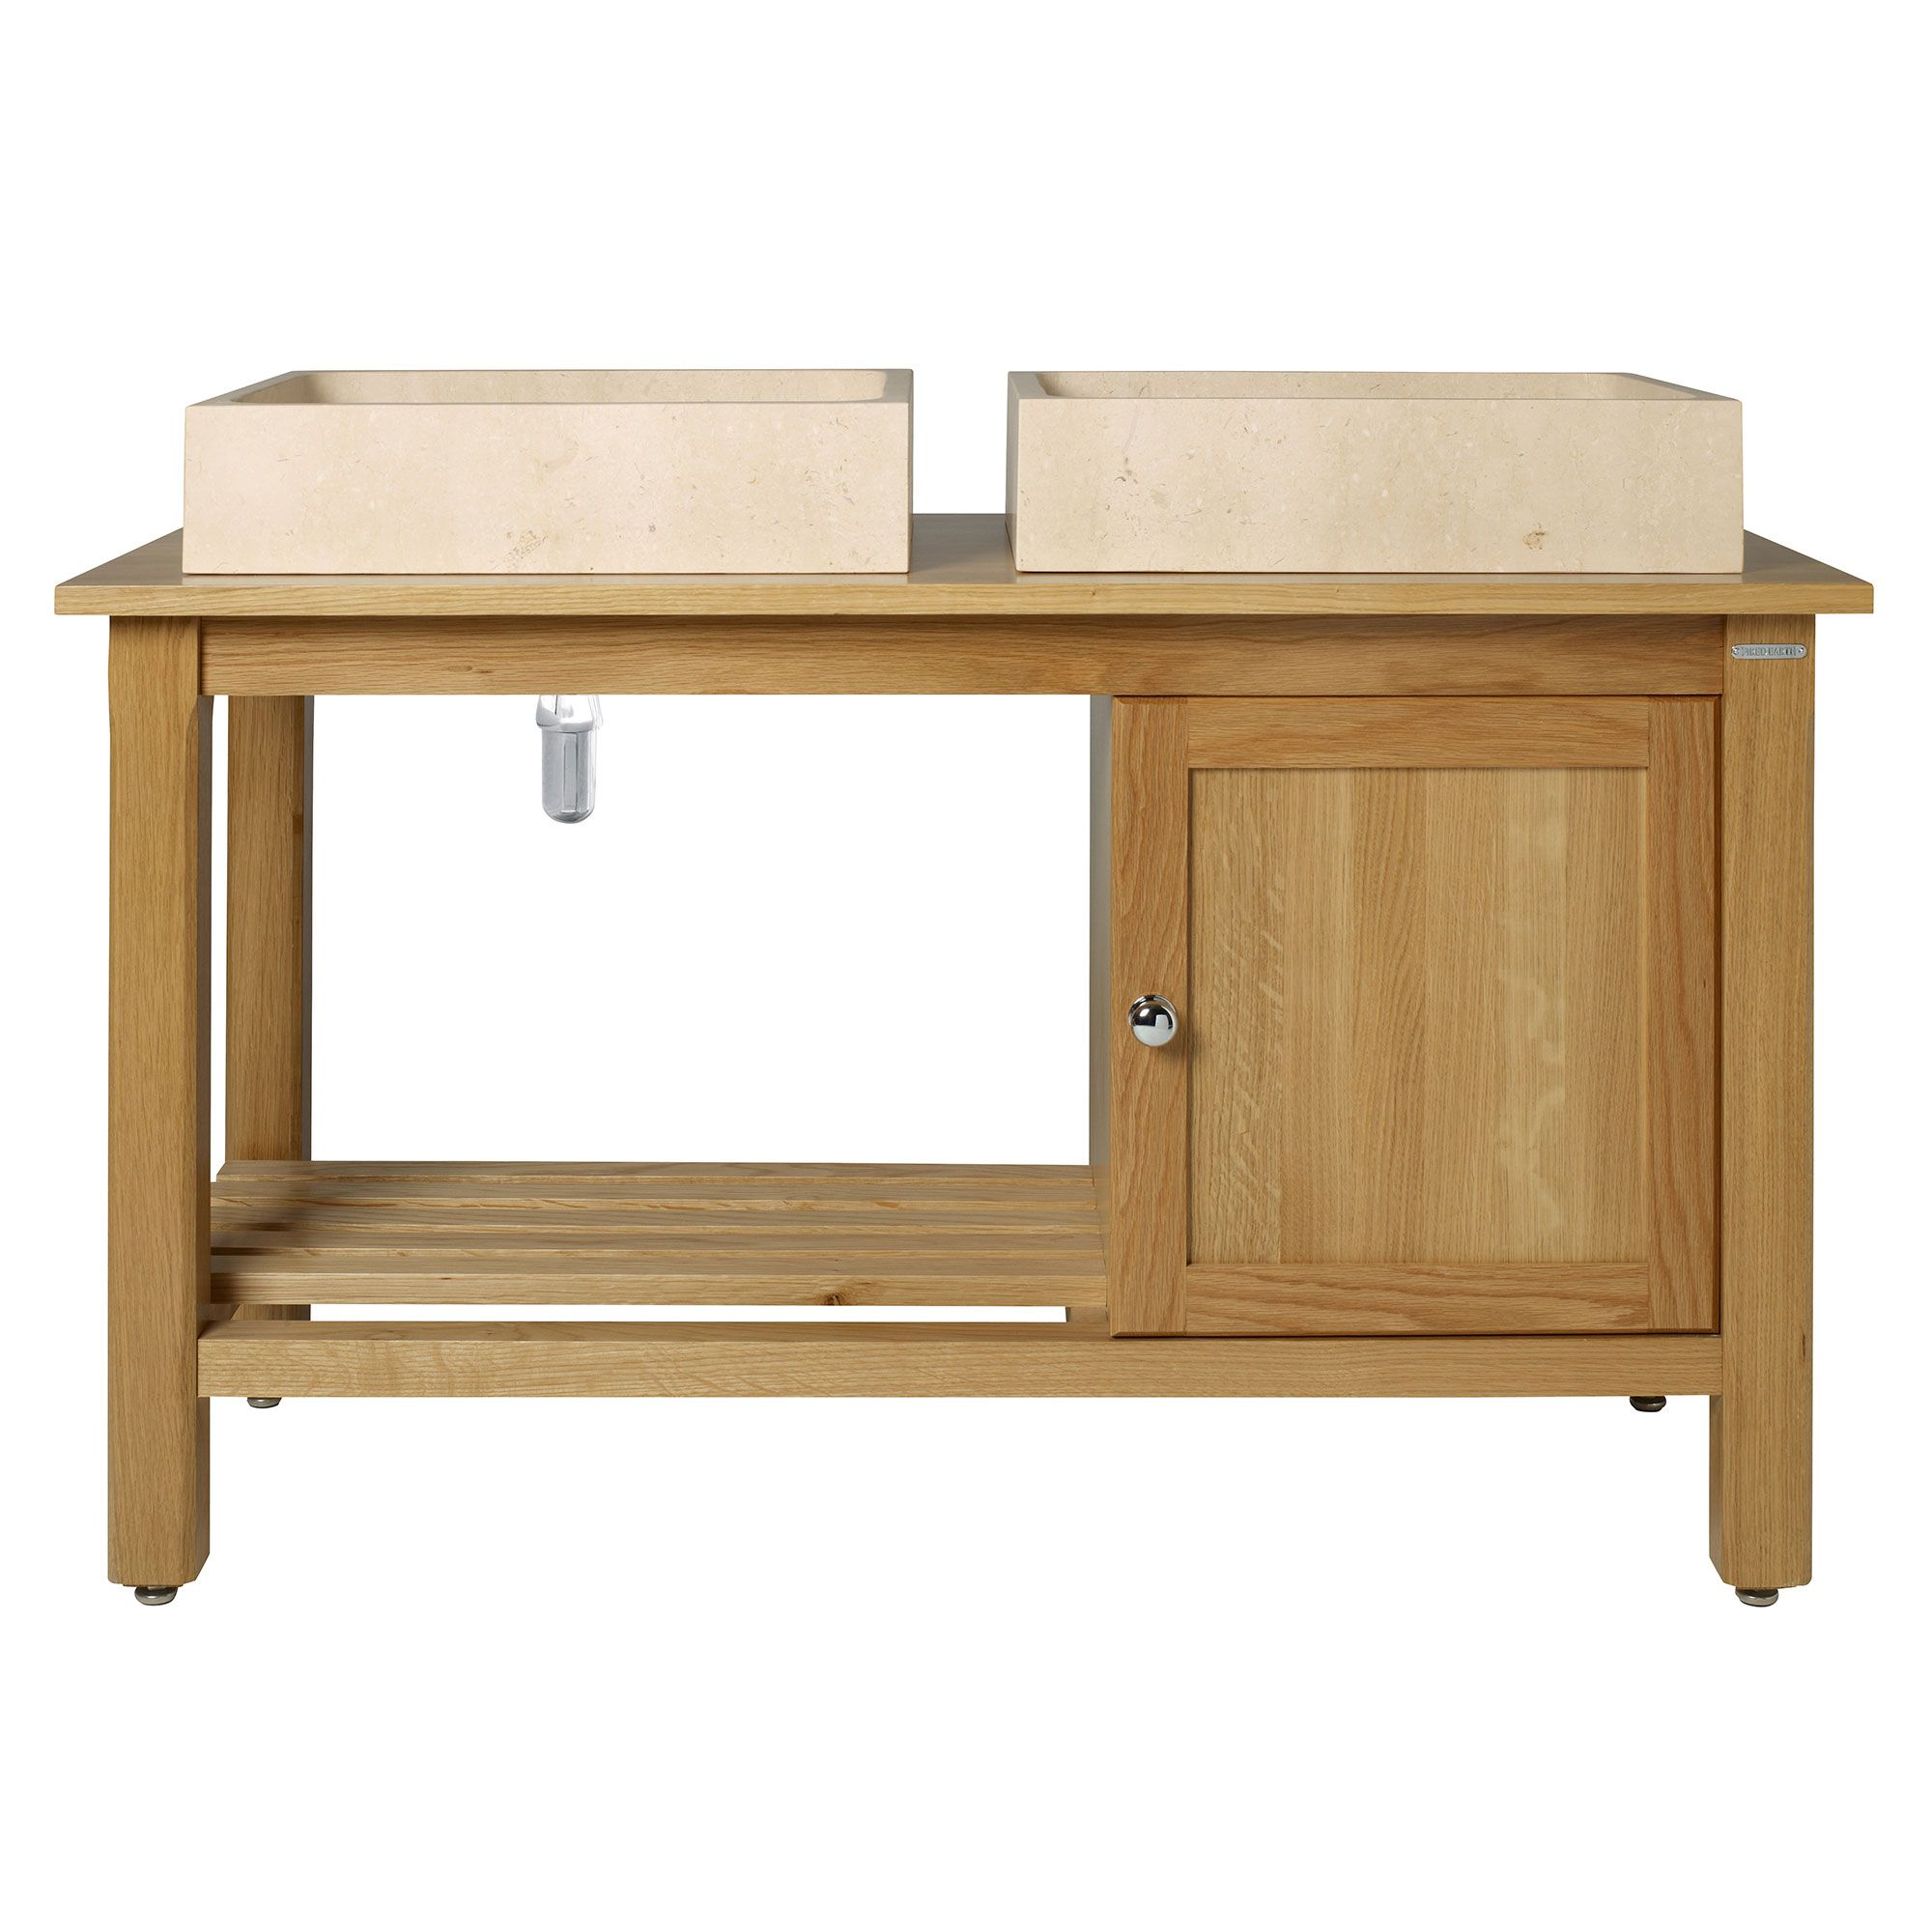 Logic Washstand 1200 With Cupboard